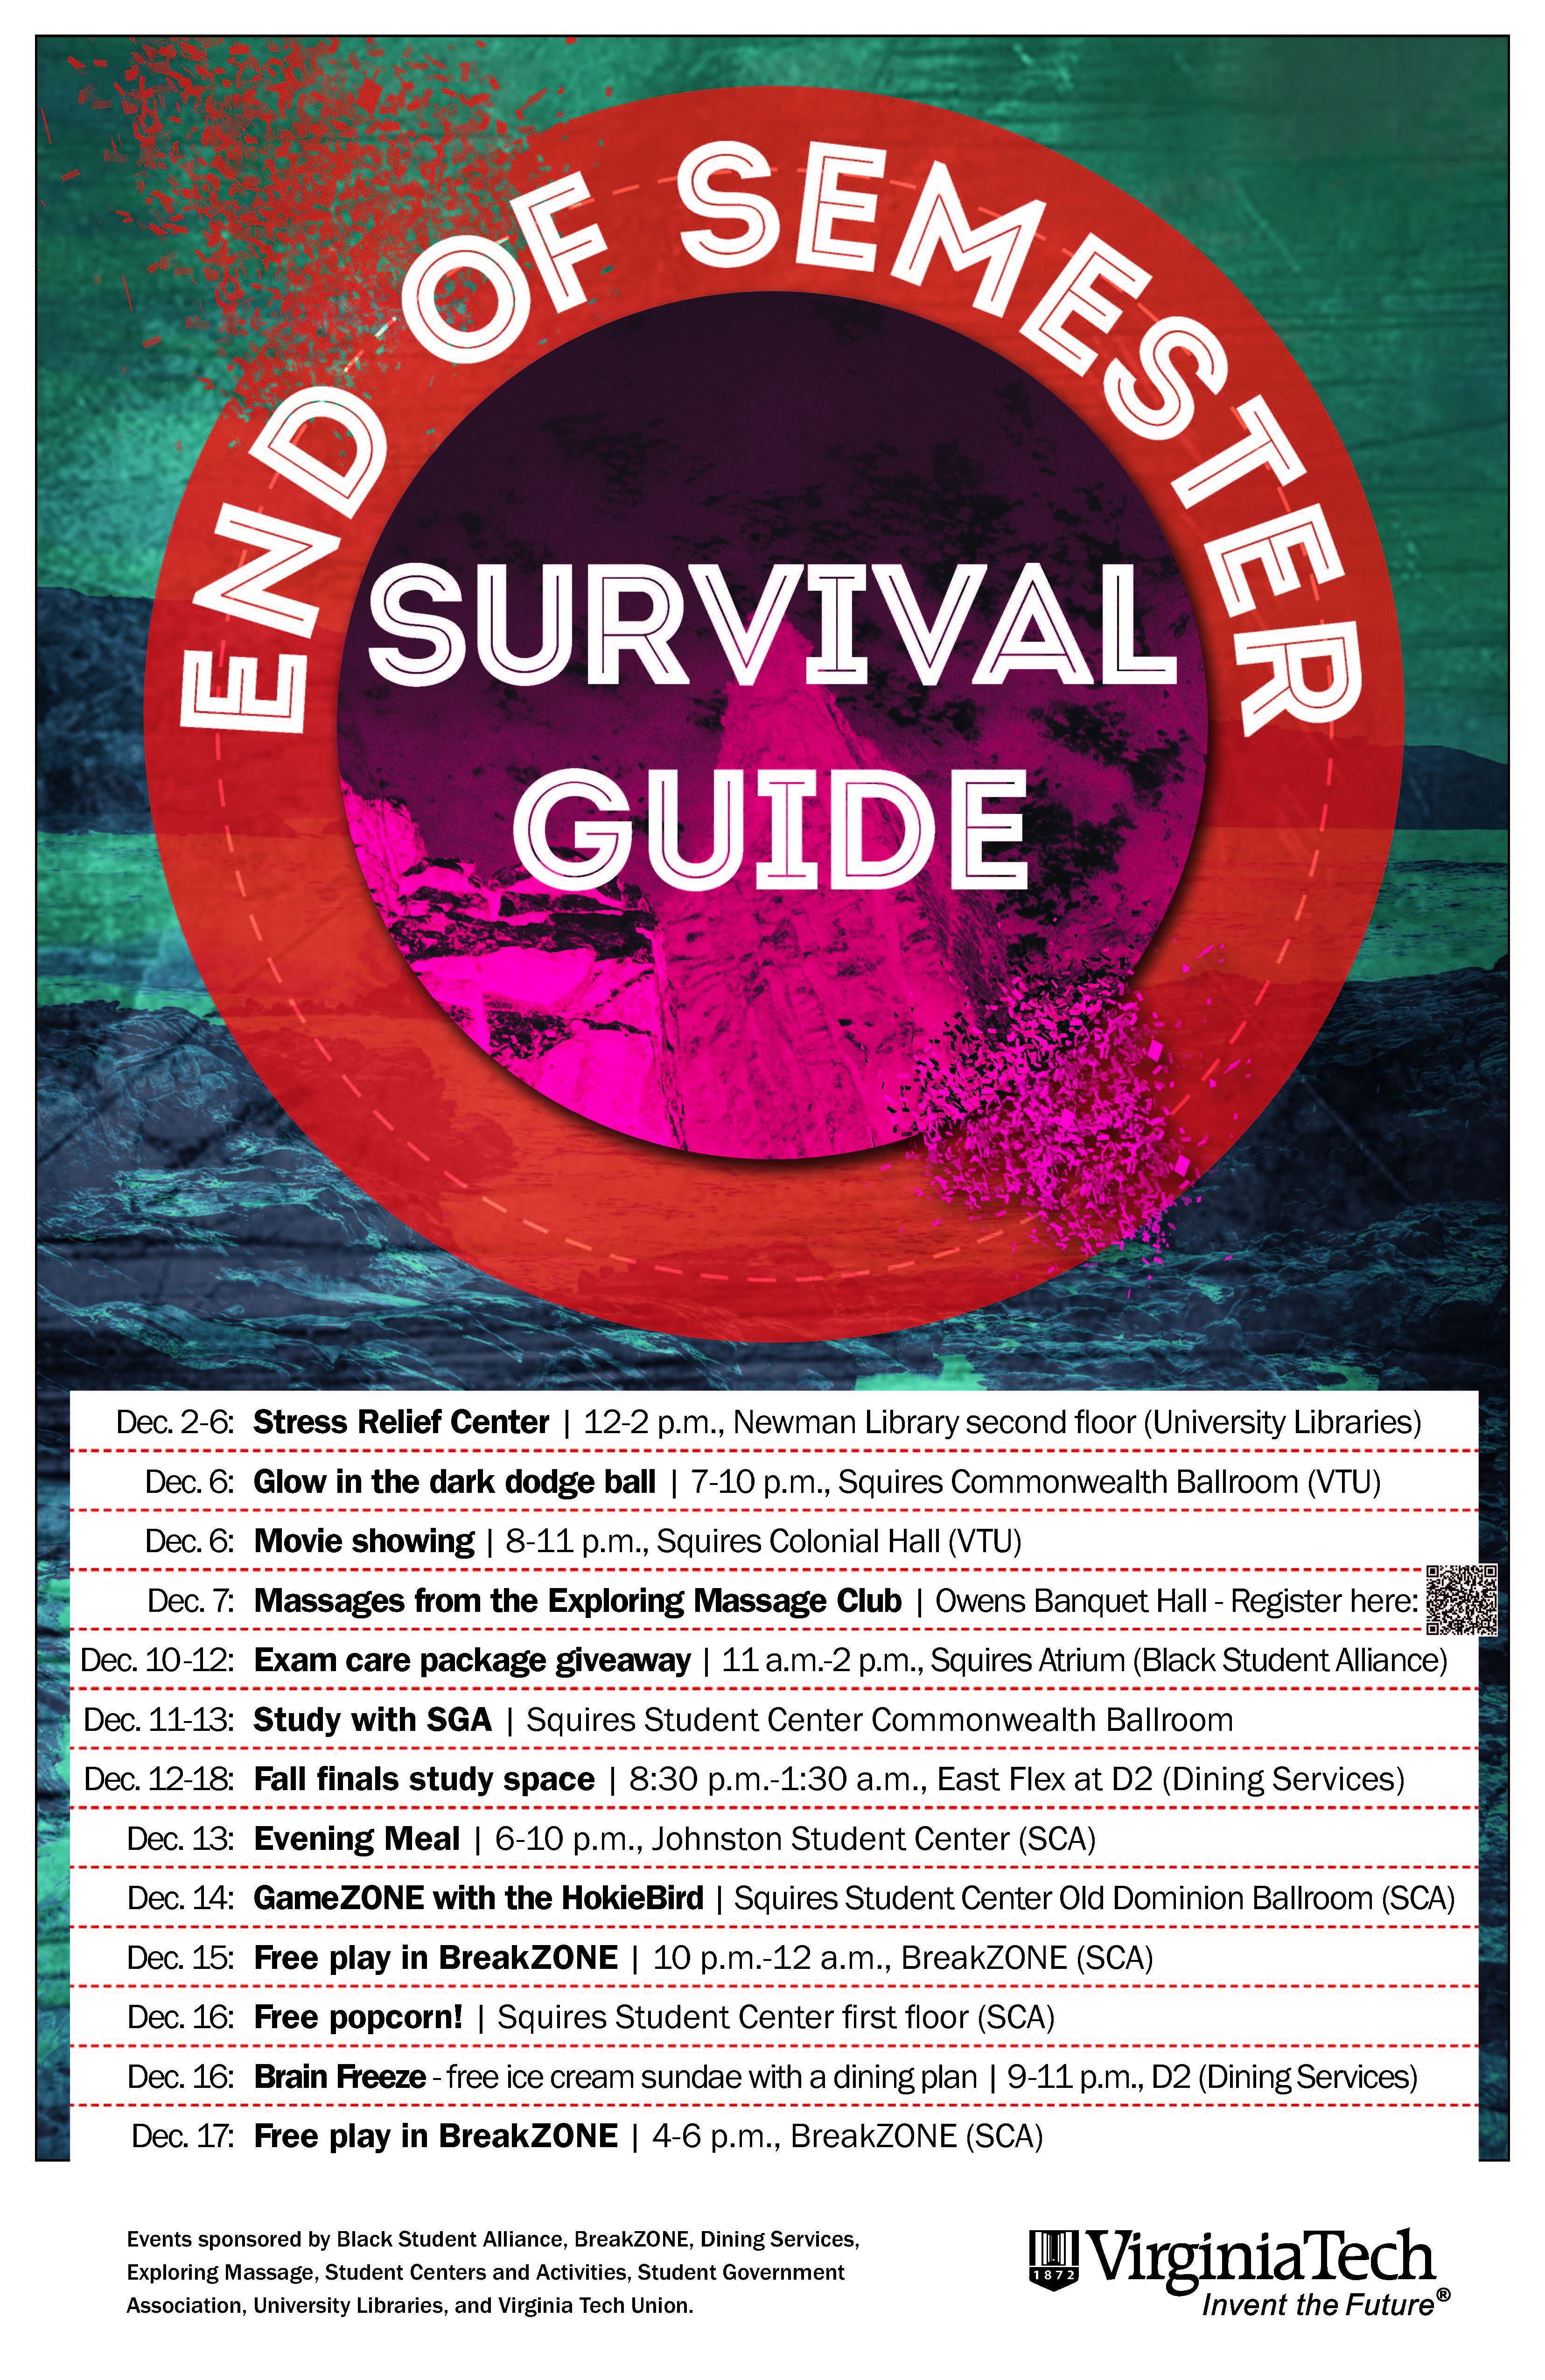 Get through the semester with vt survival guide this schedule is packed full of also rh pinterest